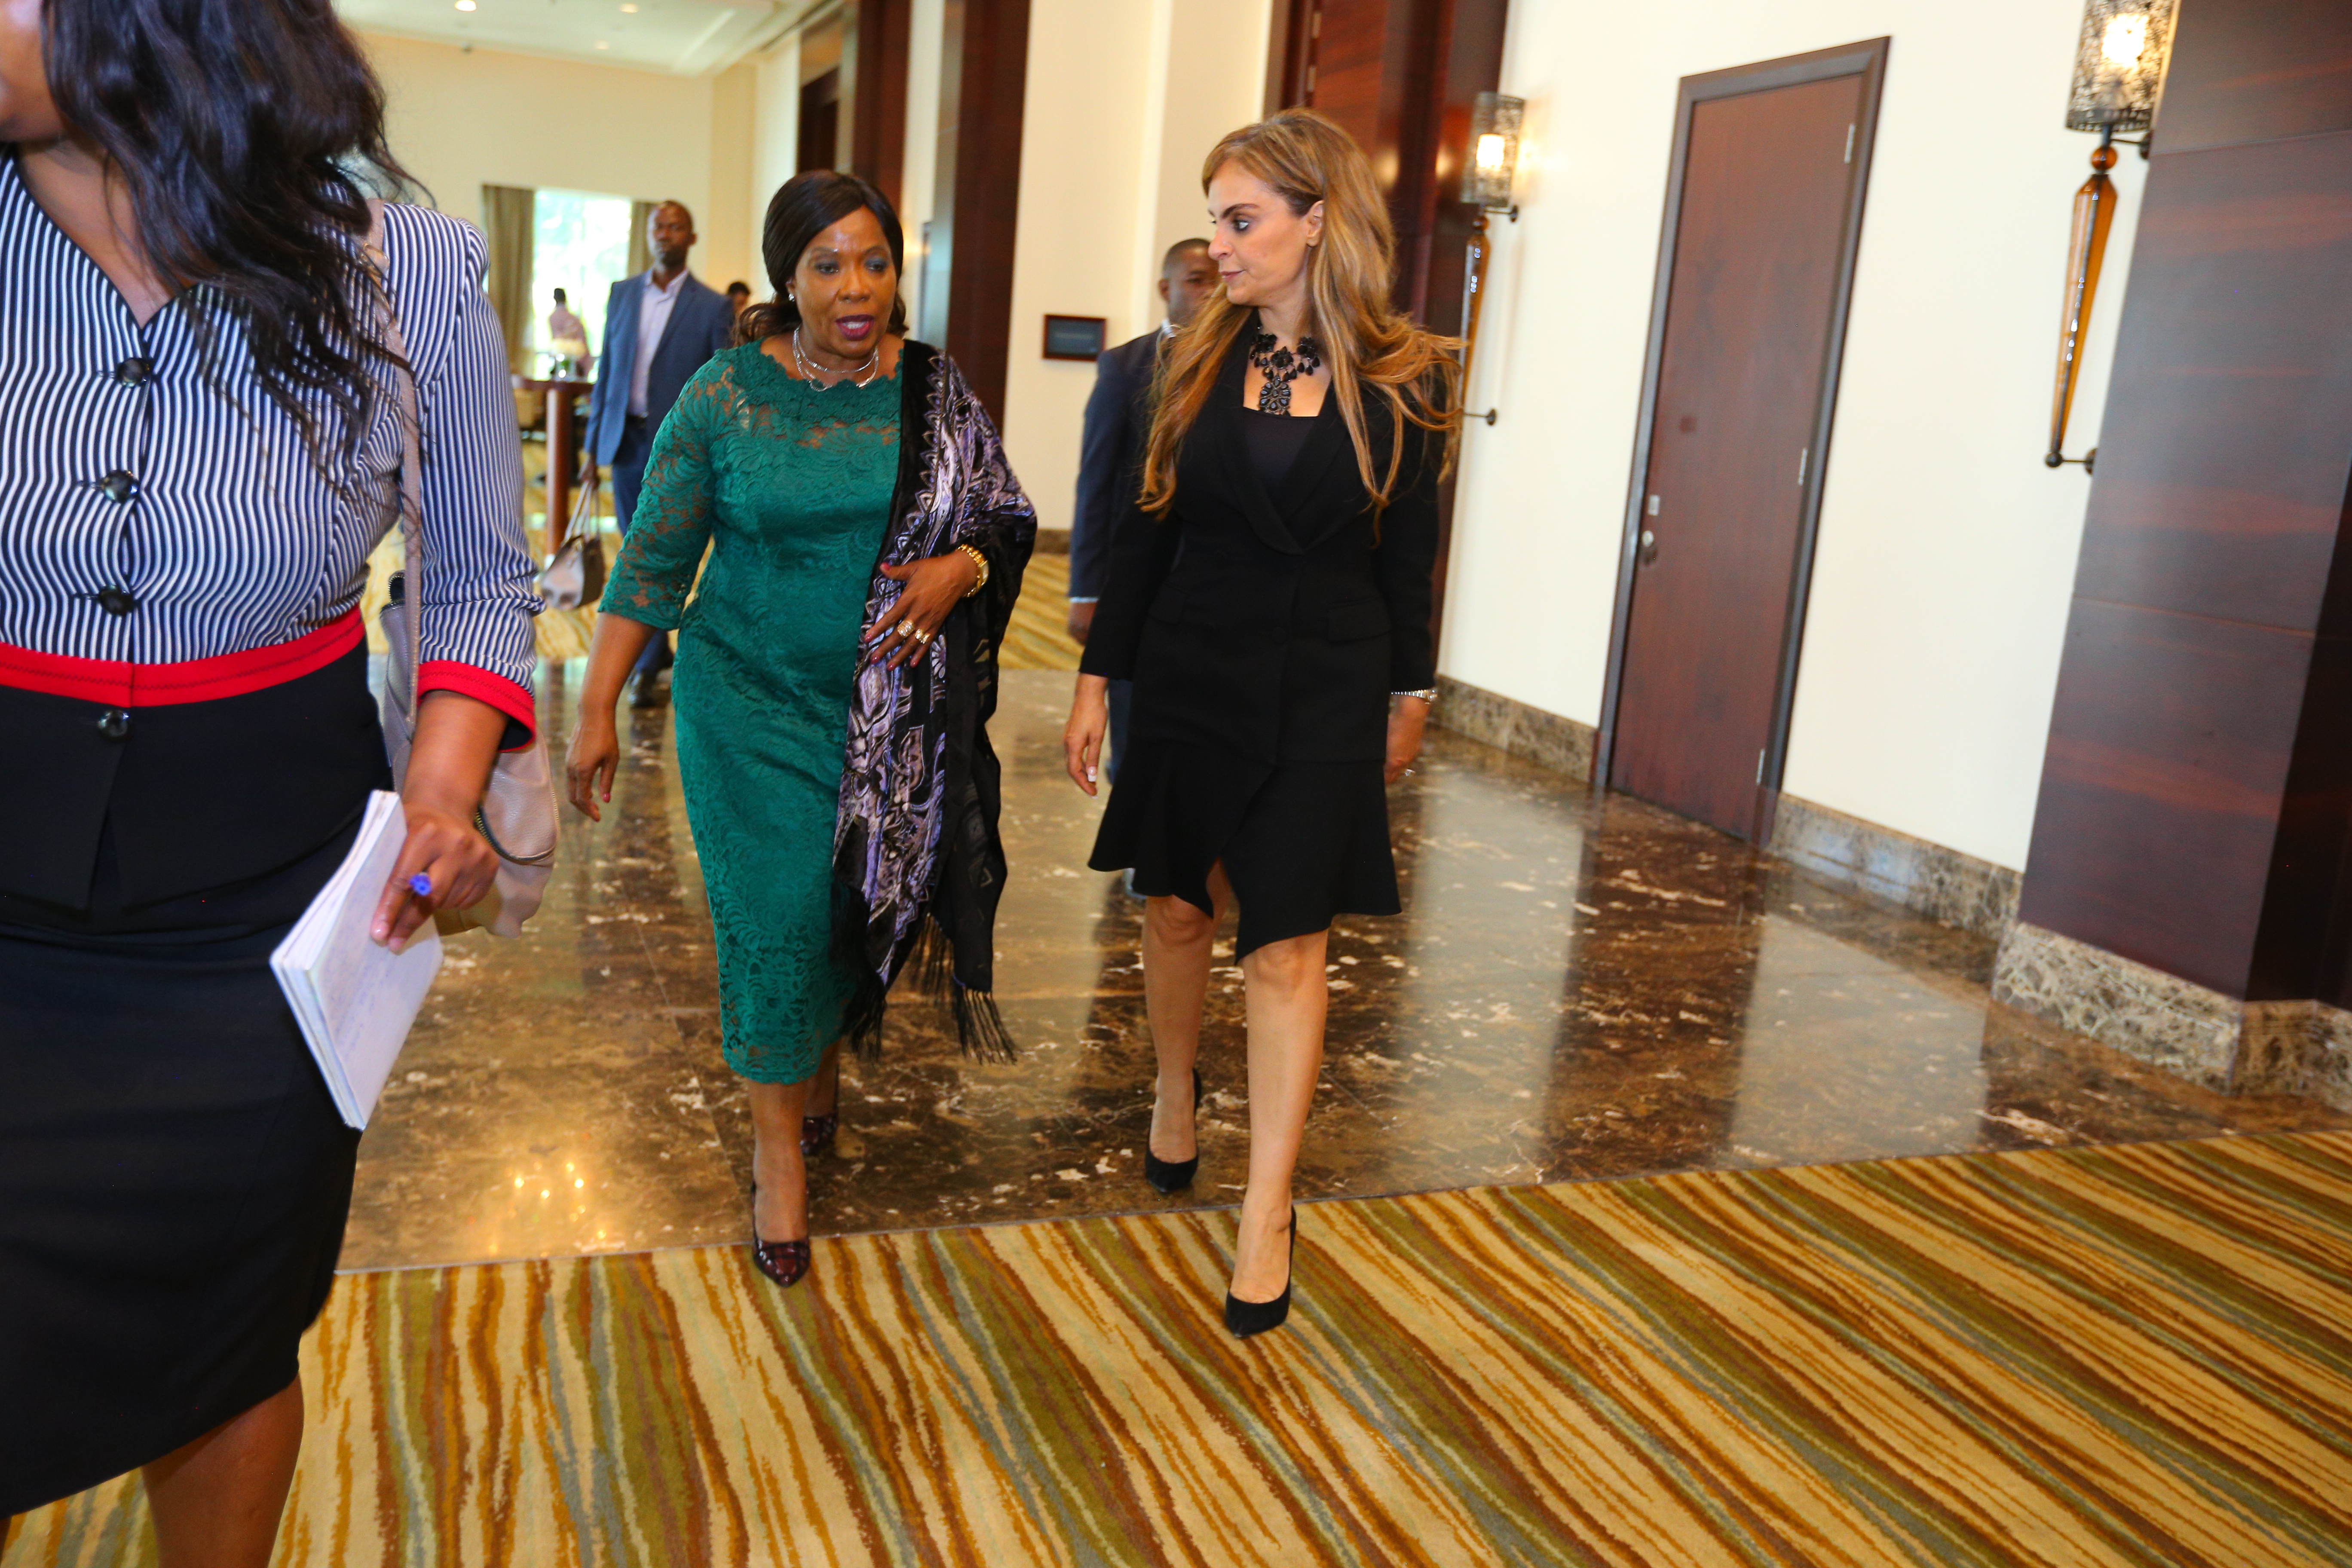 AUXILLIA MNANGAGWA, The First Lady of Zimbabwe and Ambassador of Merck More Than a Mother with Dr. Rasha Kelej, CEO of Merck Foundation and President, Merck More Than a Mother